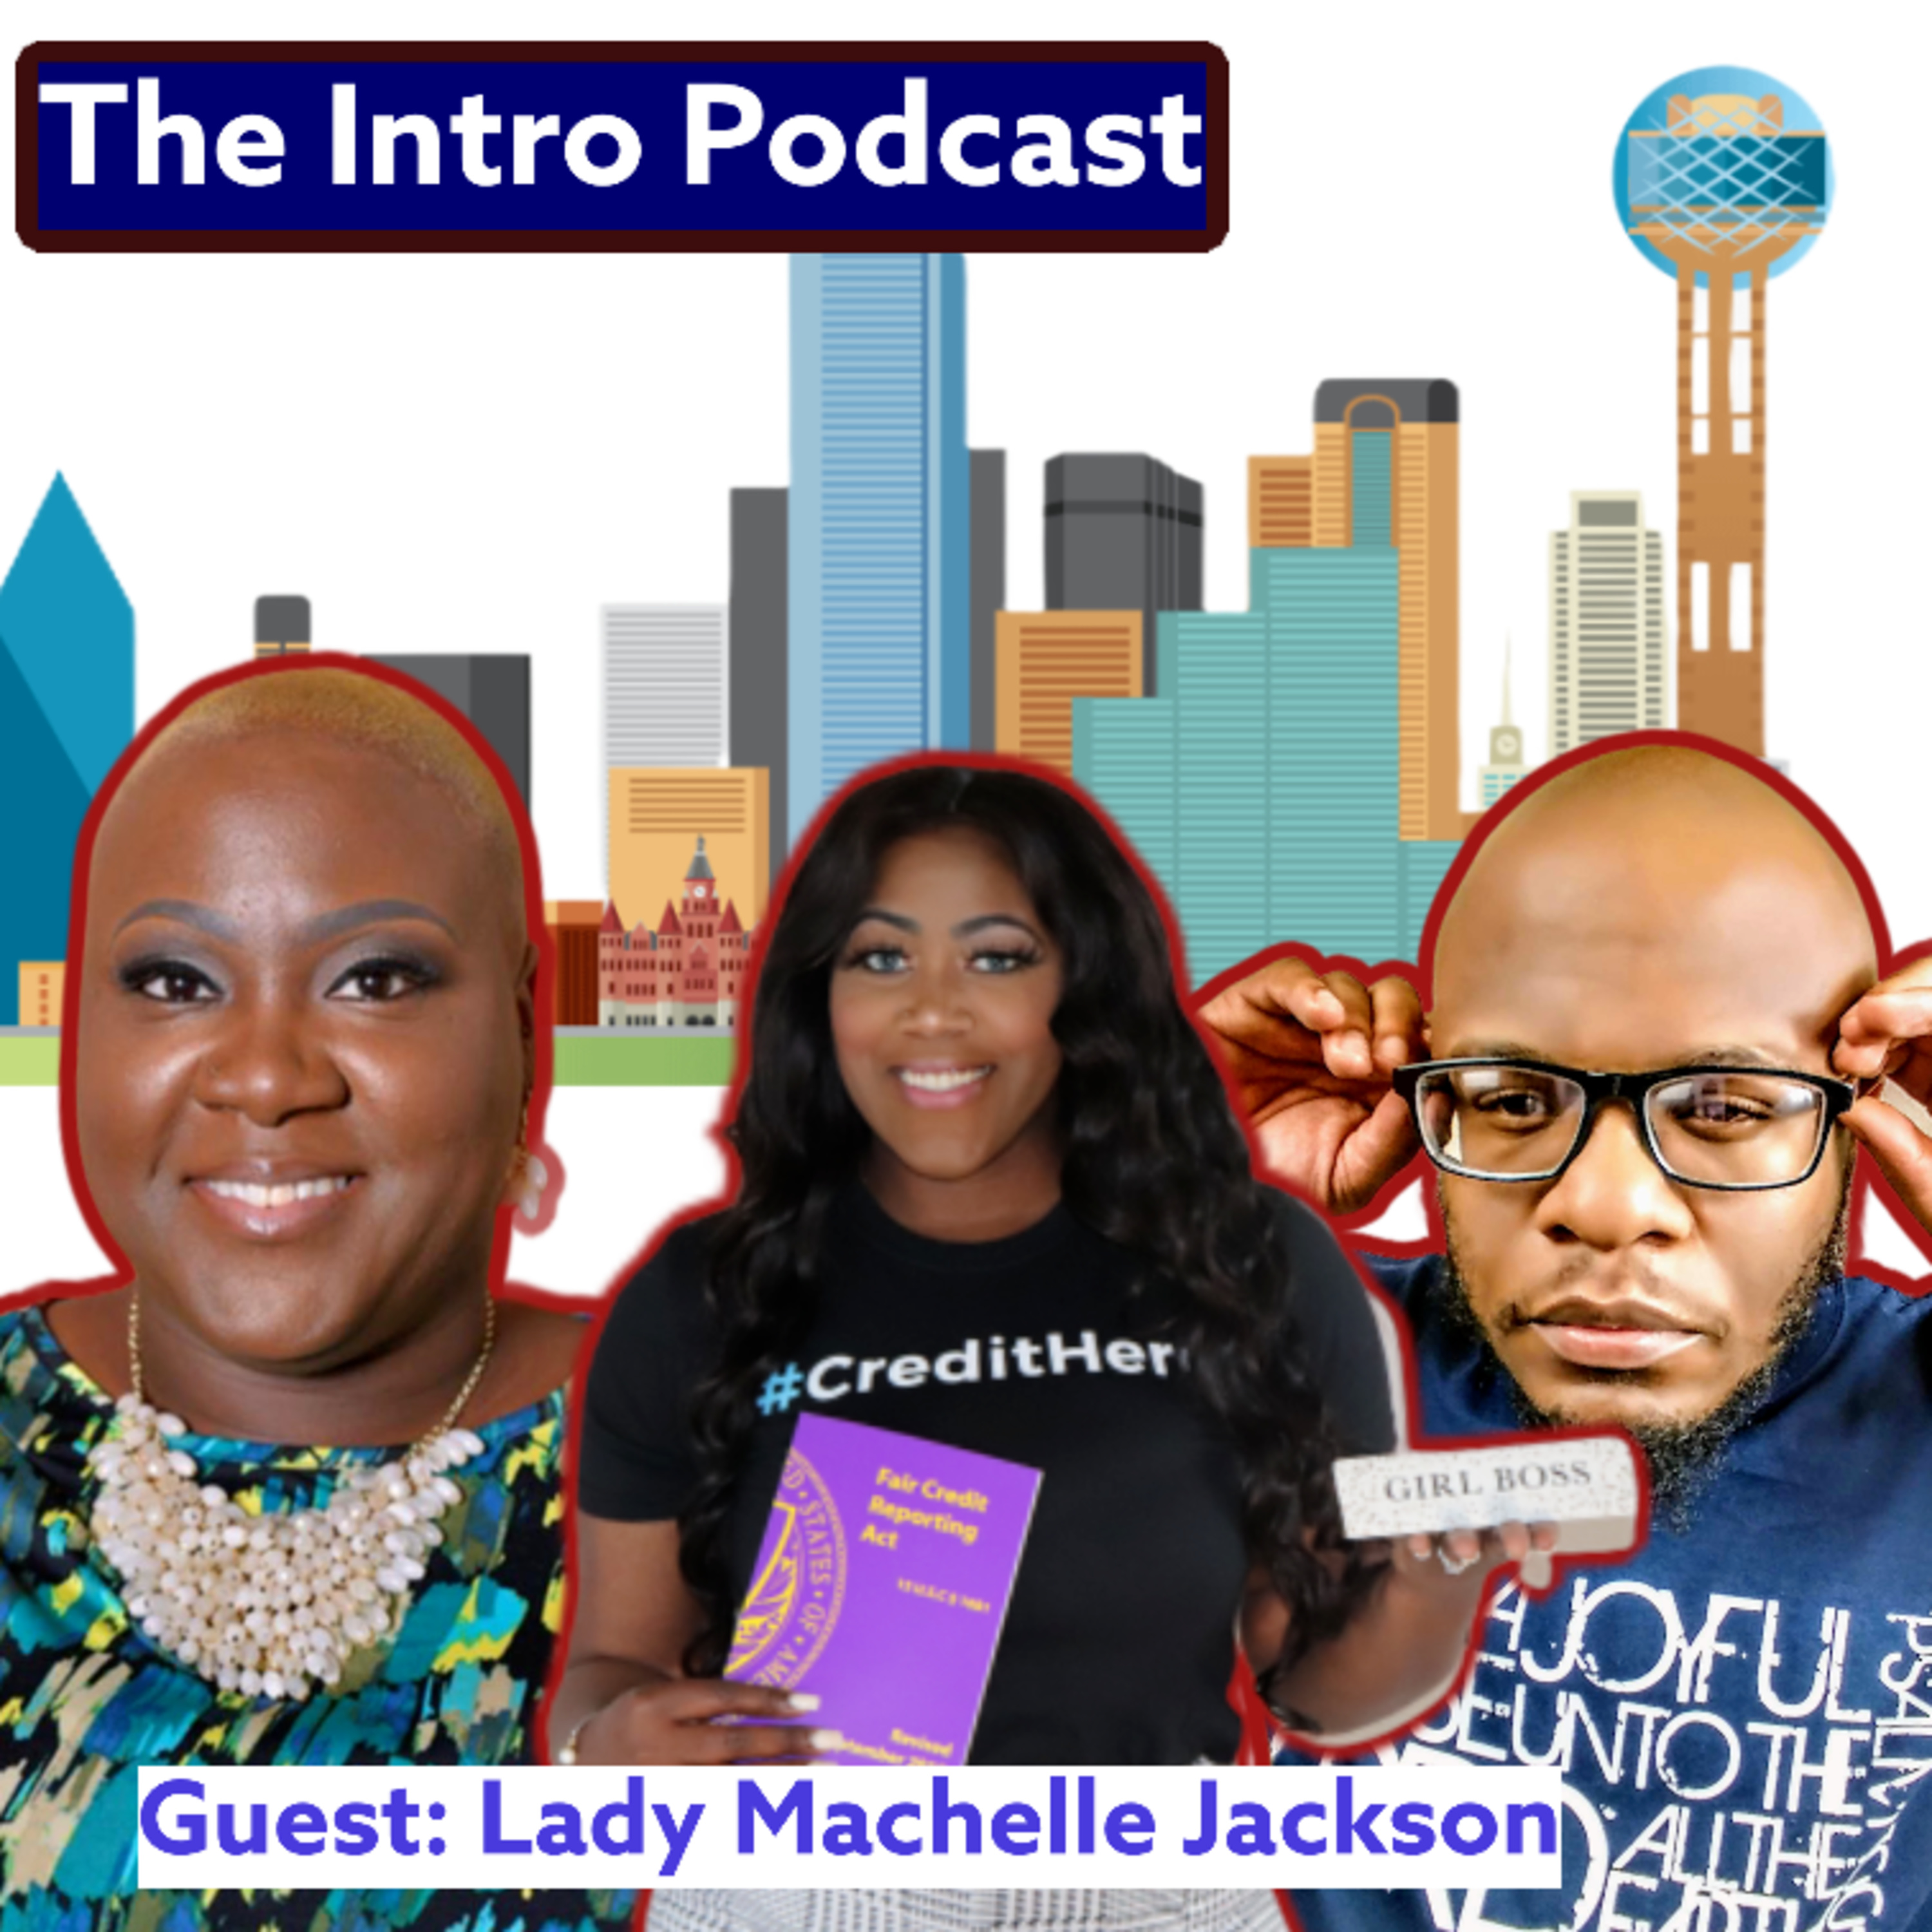 Show 8: She Does It All (Lady Machelle Jackson Interview ONLY)